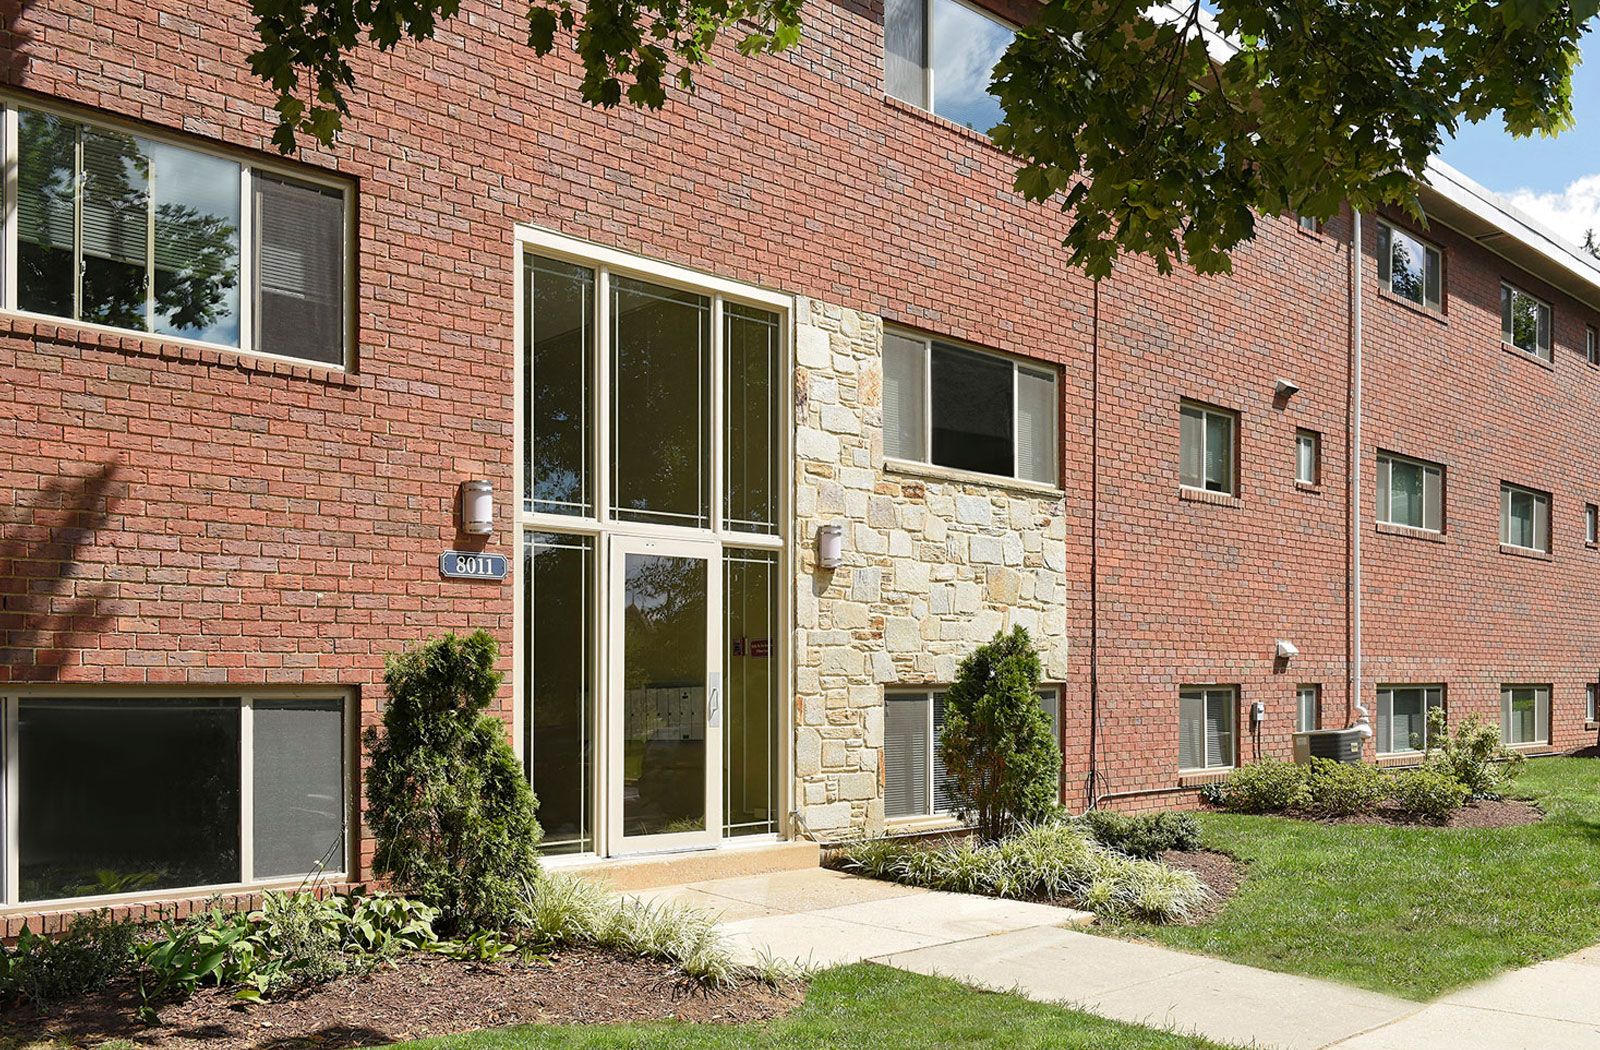 Cardiff Hall Apartments In Towson Md 21204